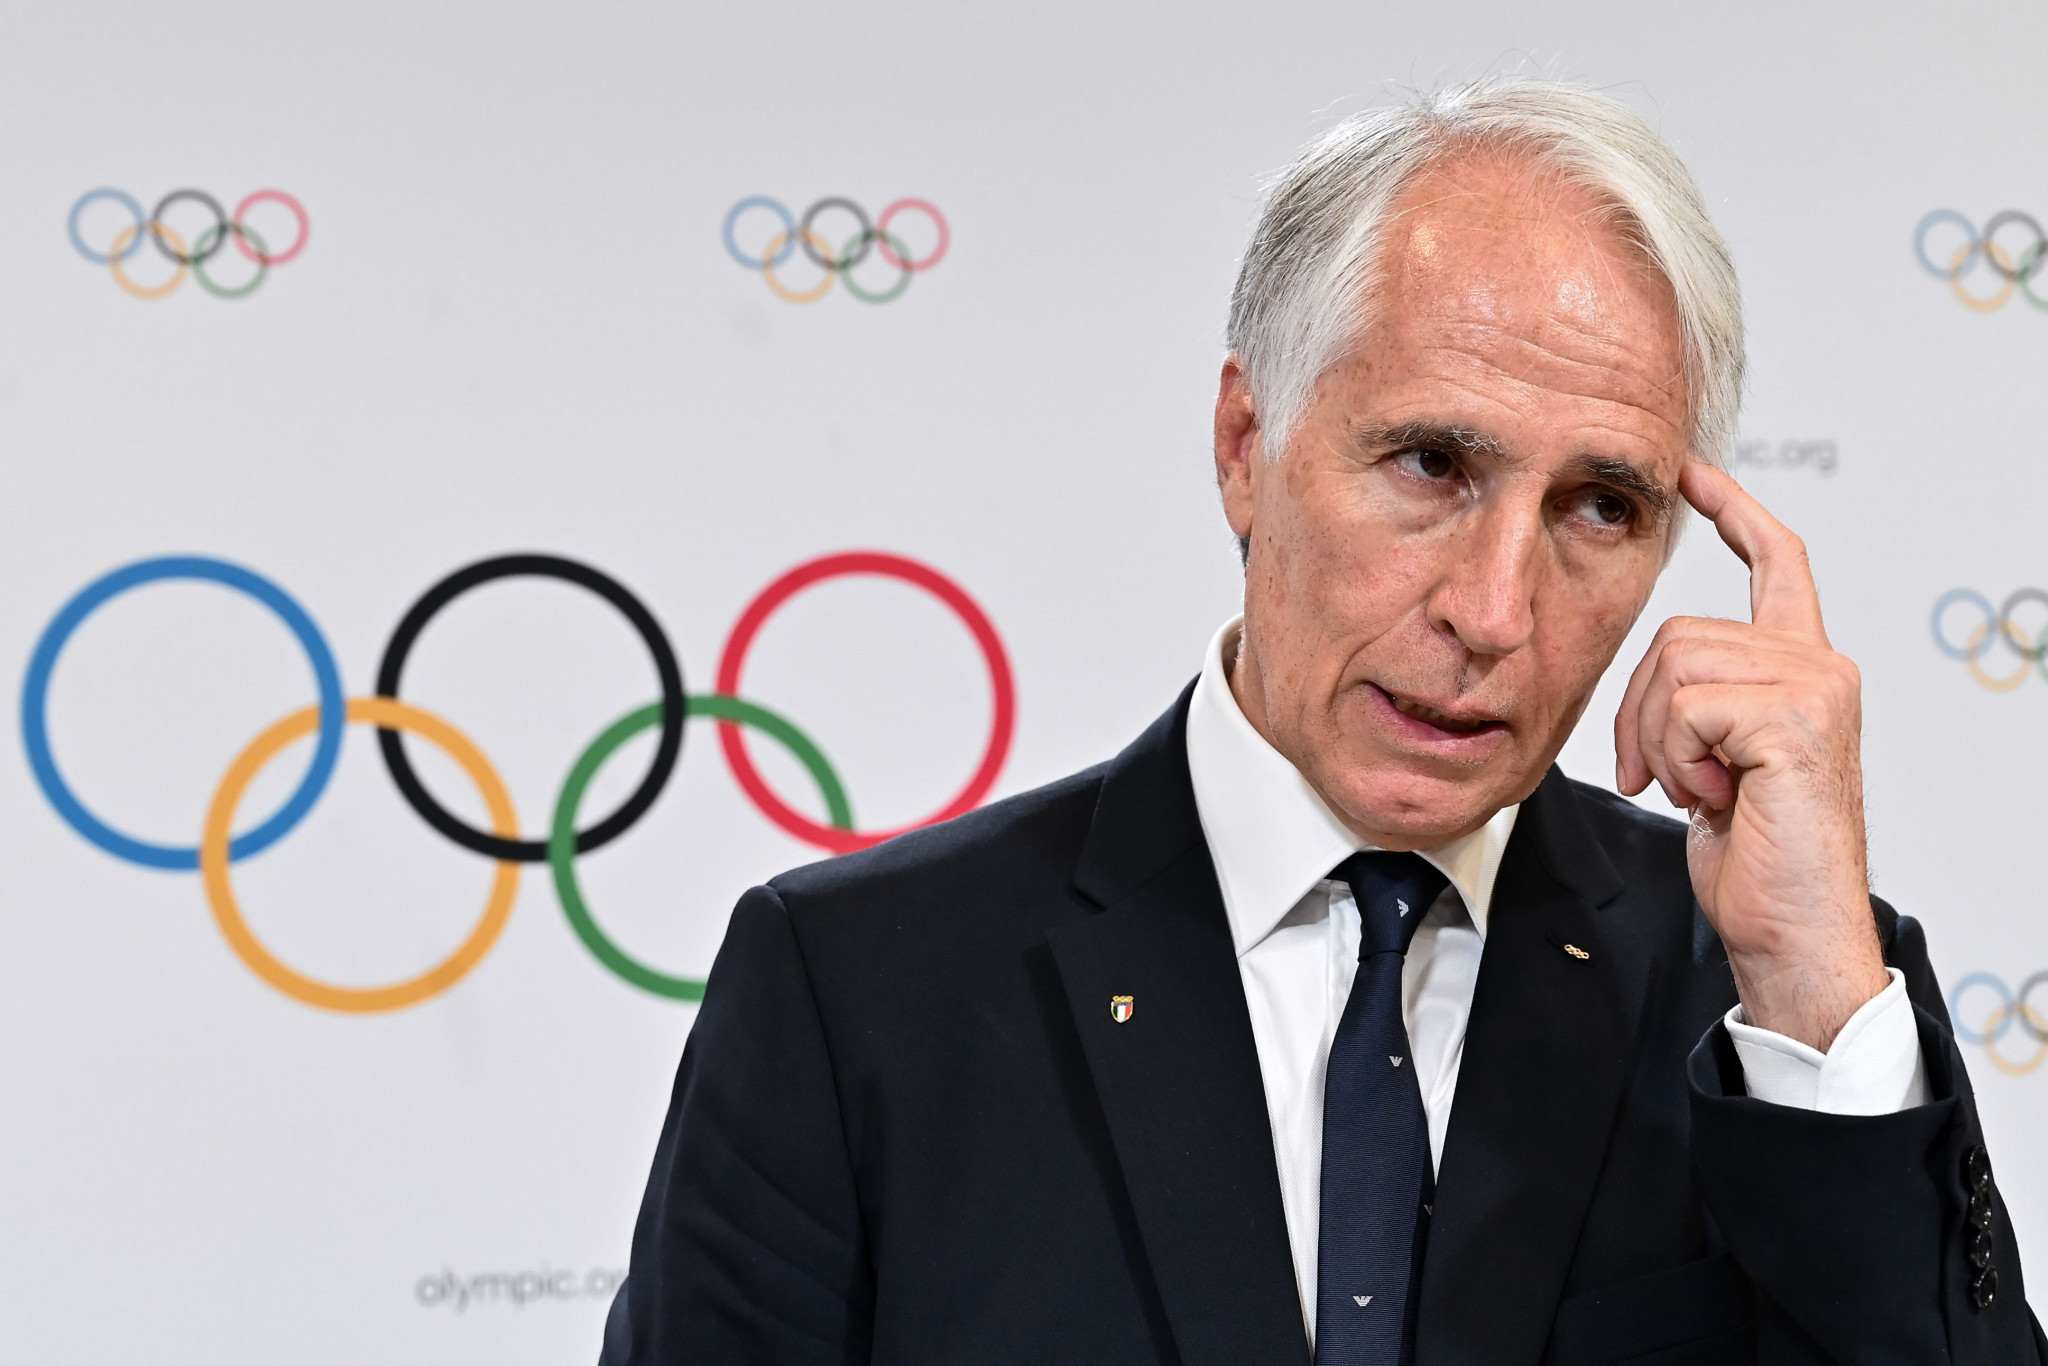 Three Five Star politicians call for Malagò to step aside from CONI and Milan Cortina 2026 roles